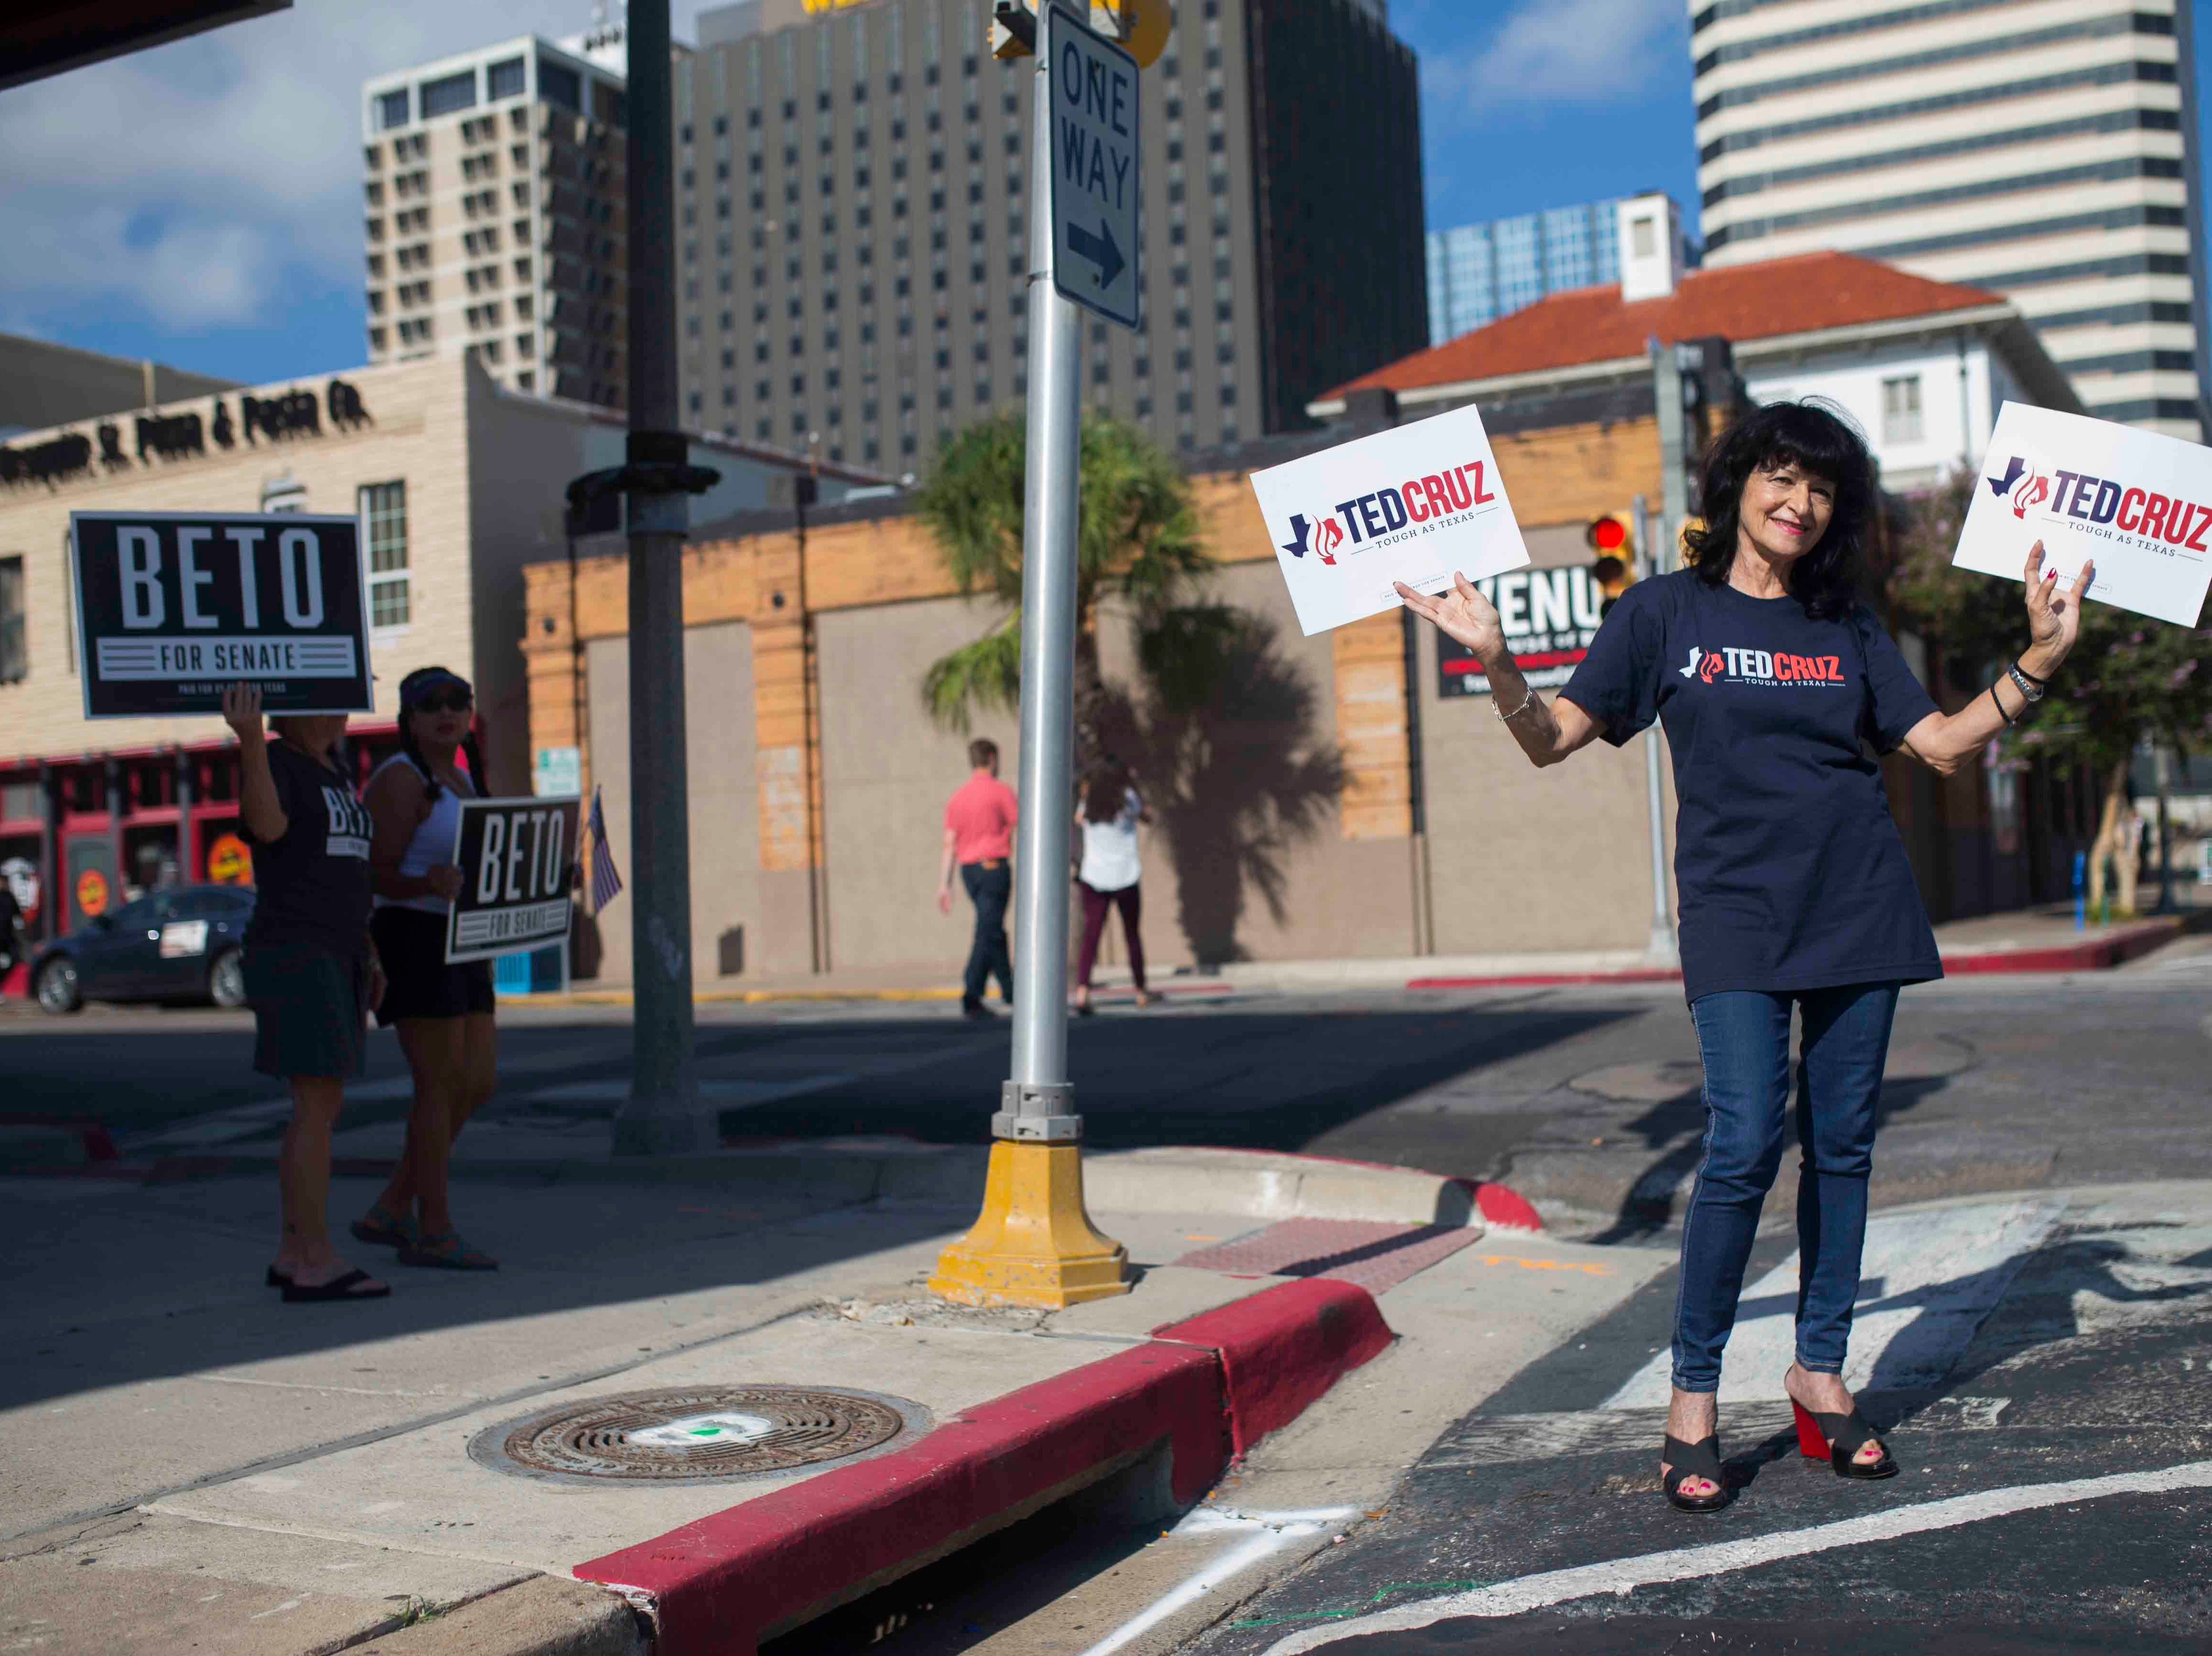 Margaret Fratila (right) stands in front of people with Beto O'Rourke signs before a Ted Cruz campaign event on Saturday, August 16, 2018, at House of Rock in Corpus Christi.